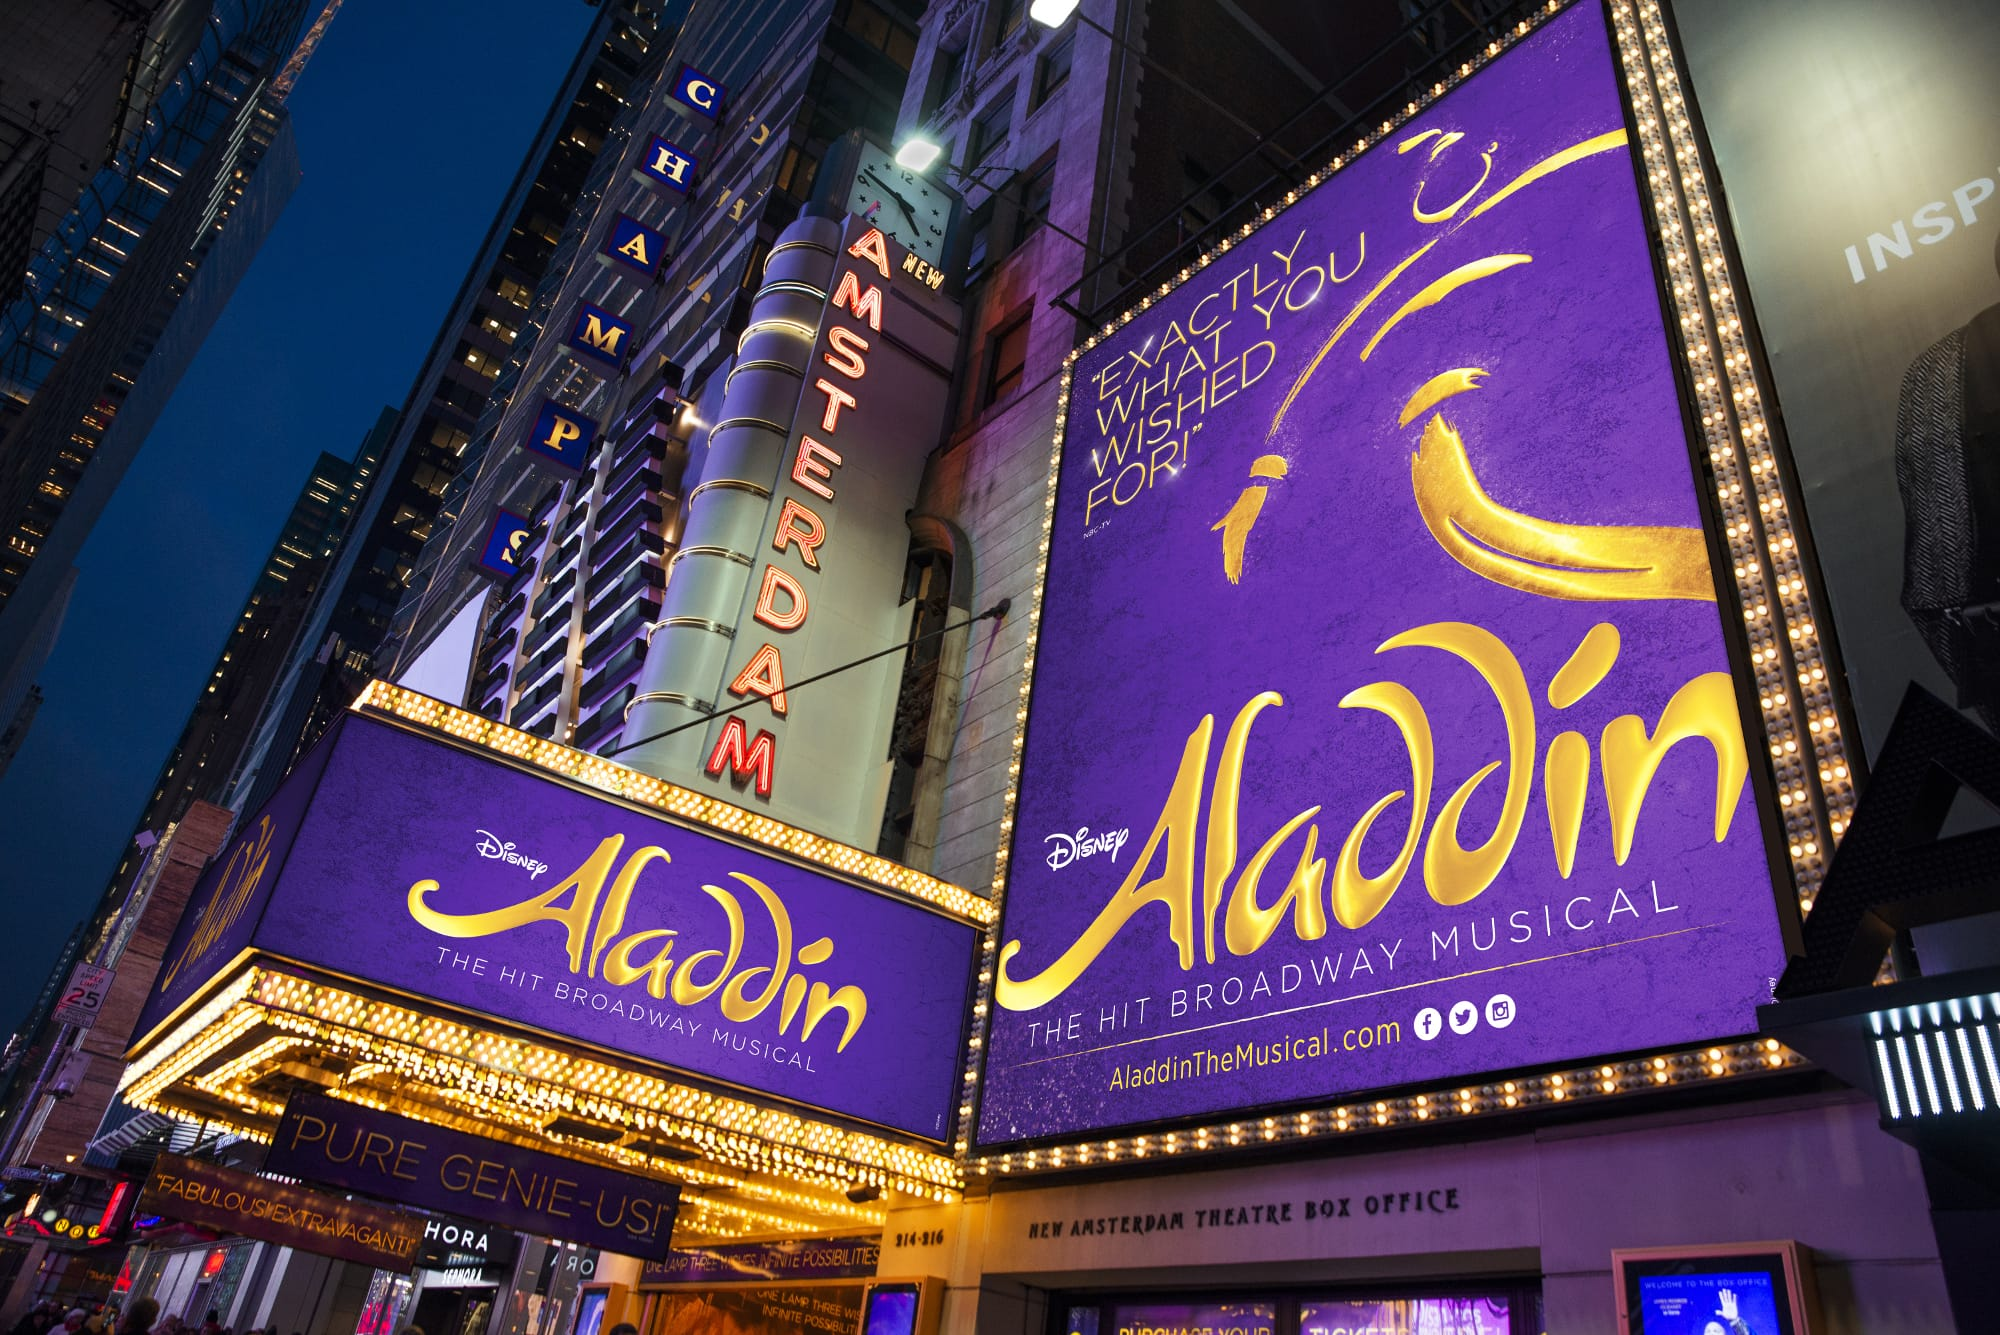 Disney ALADDIN - New Amsterdam Theatre, New York